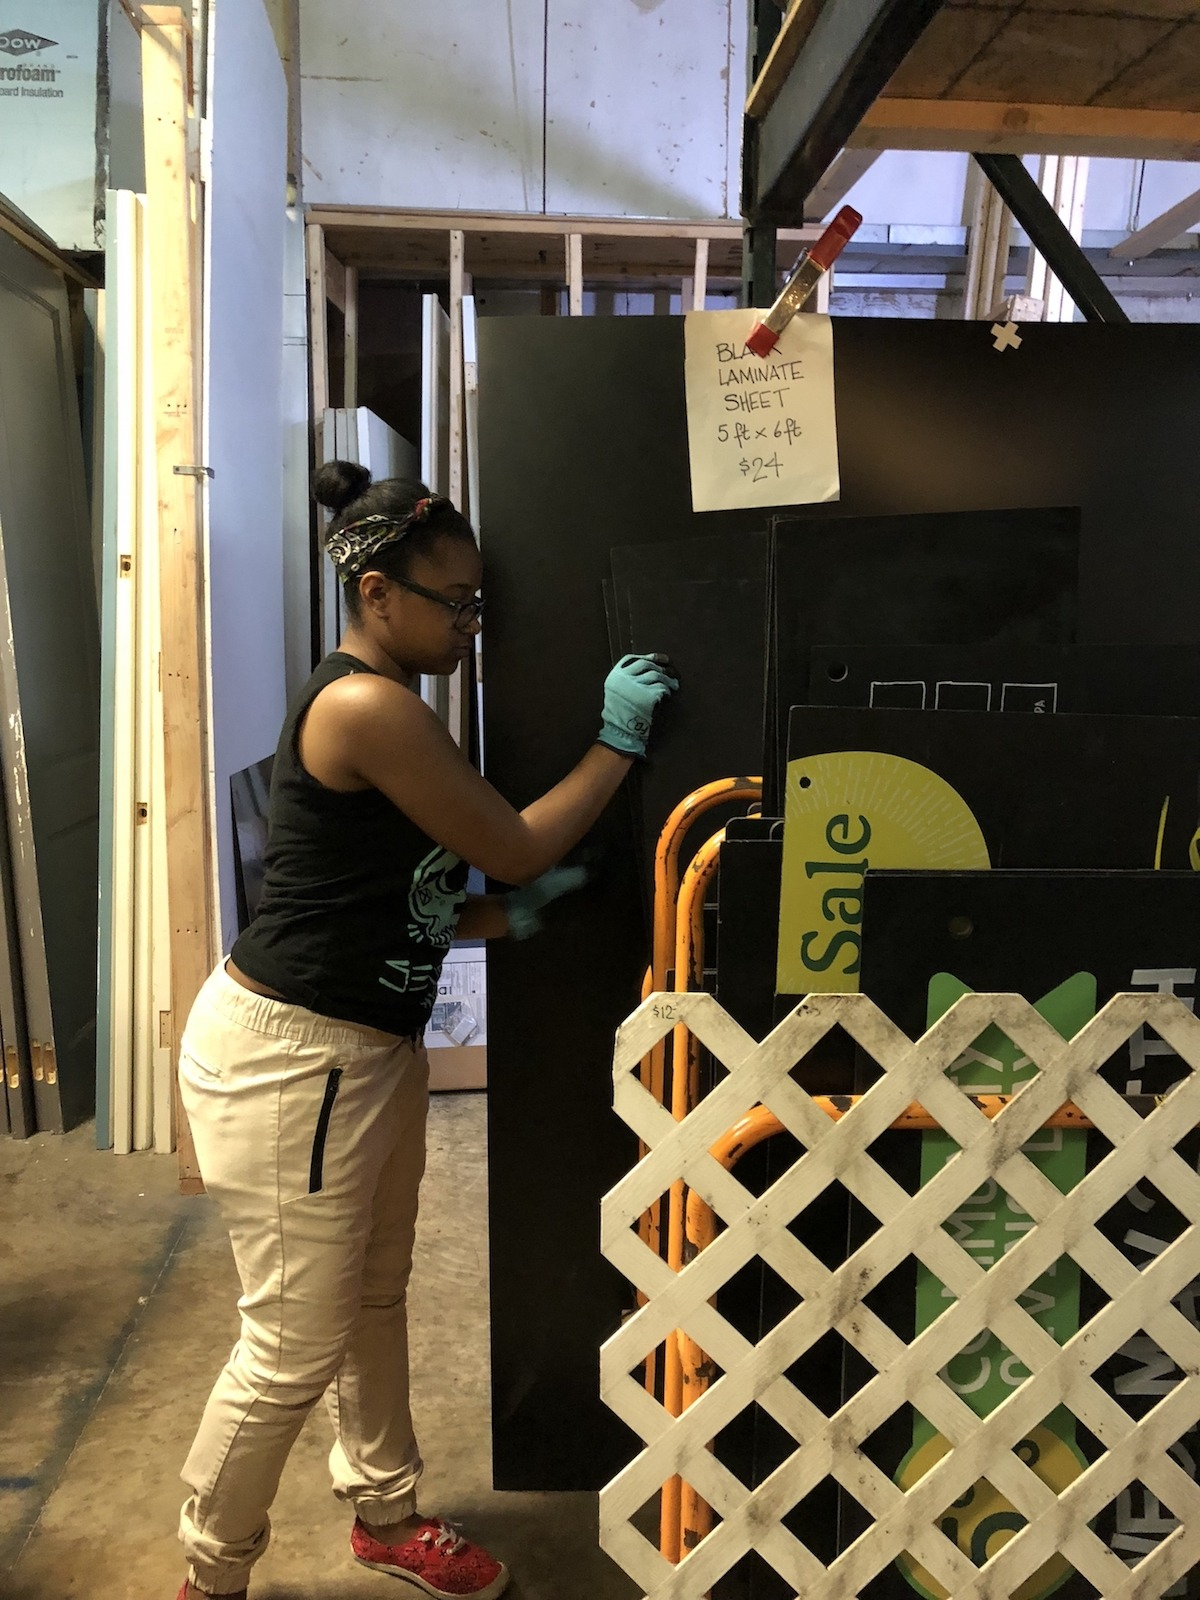 Asya completes her senior project at the re!